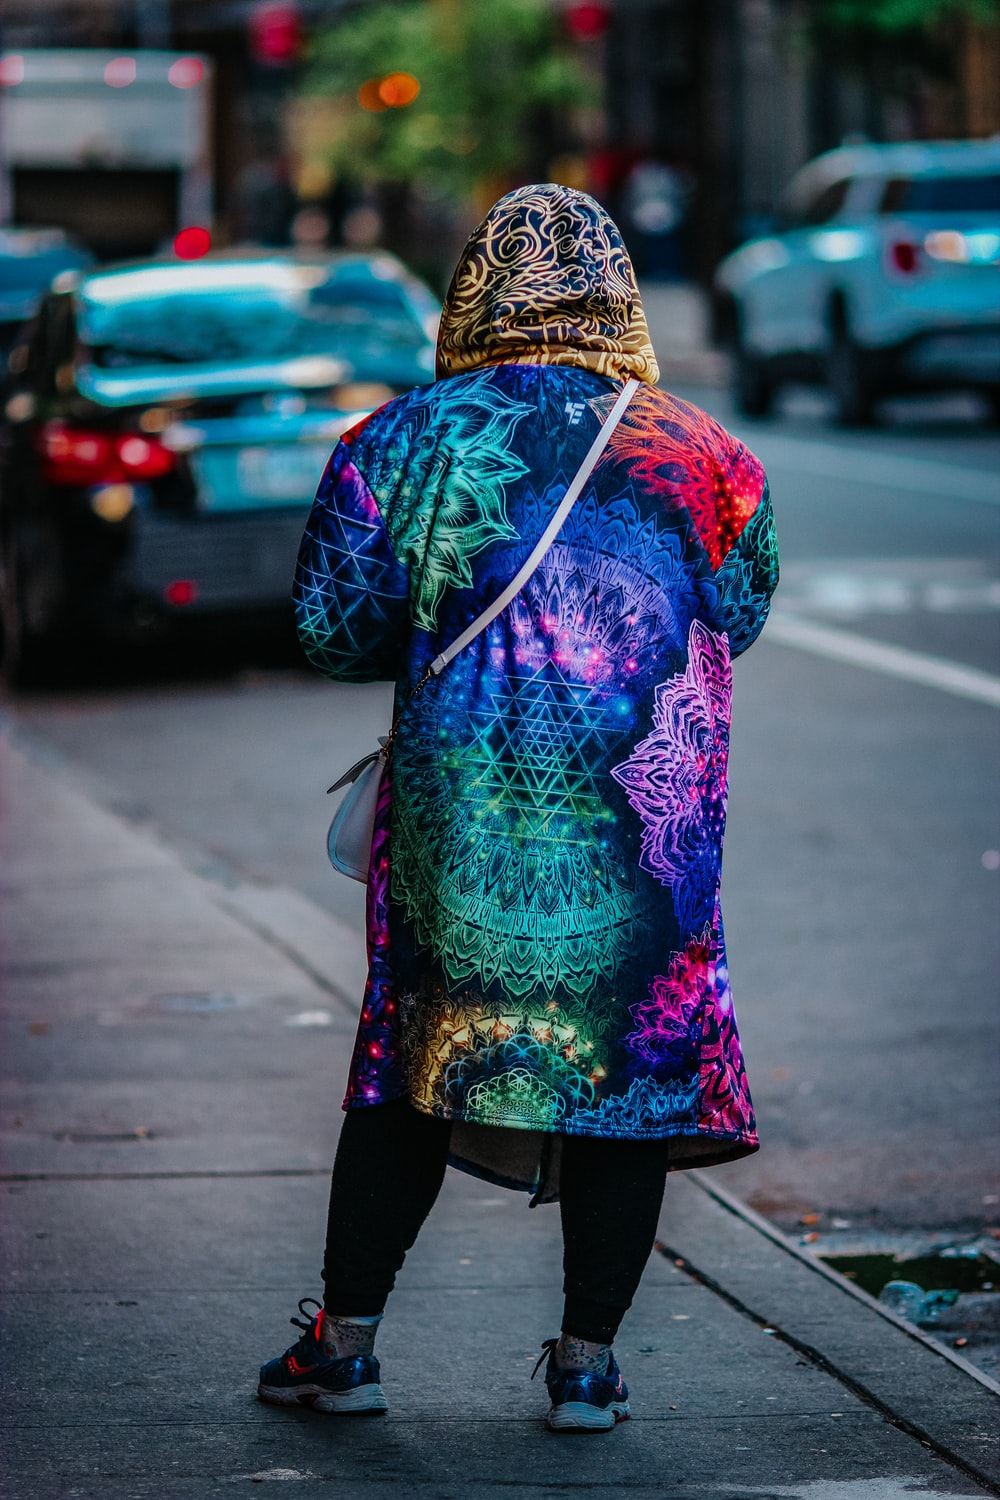 woman in purple and pink floral long sleeve dress standing on sidewalk during daytime